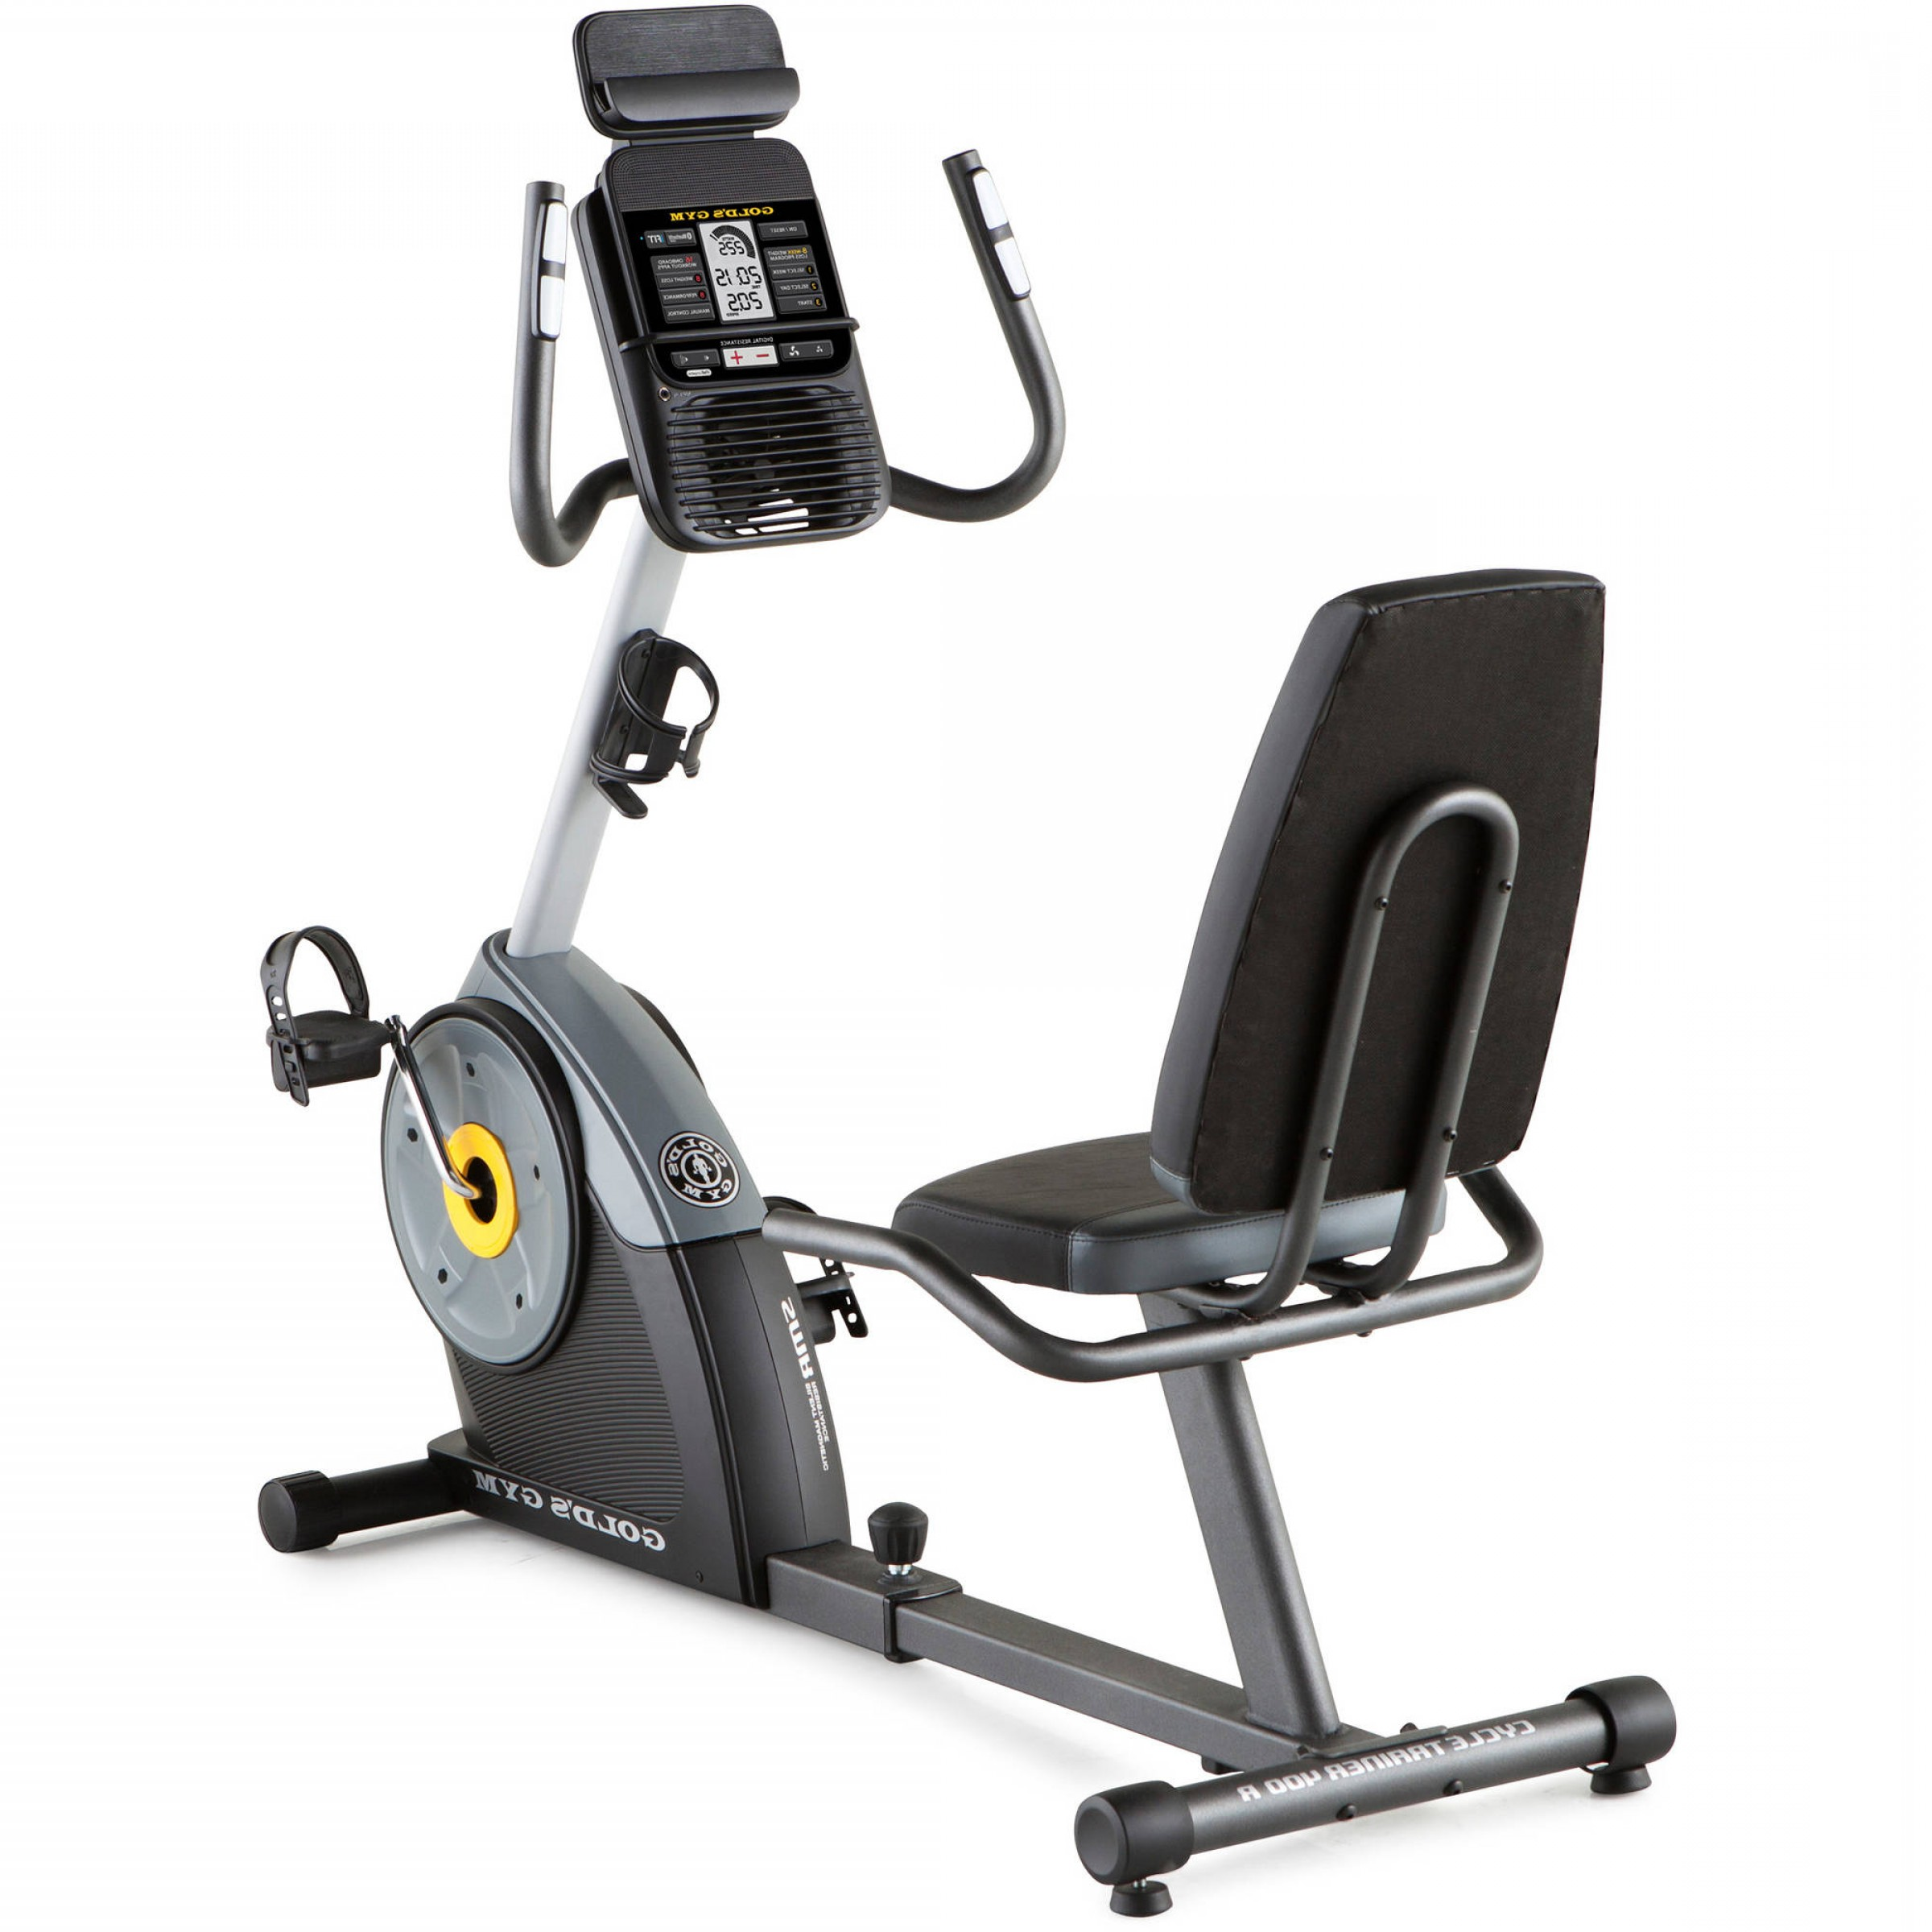 Gold Gym Vector: Golds Gym Cycle Trainer Ri Exercise Bike